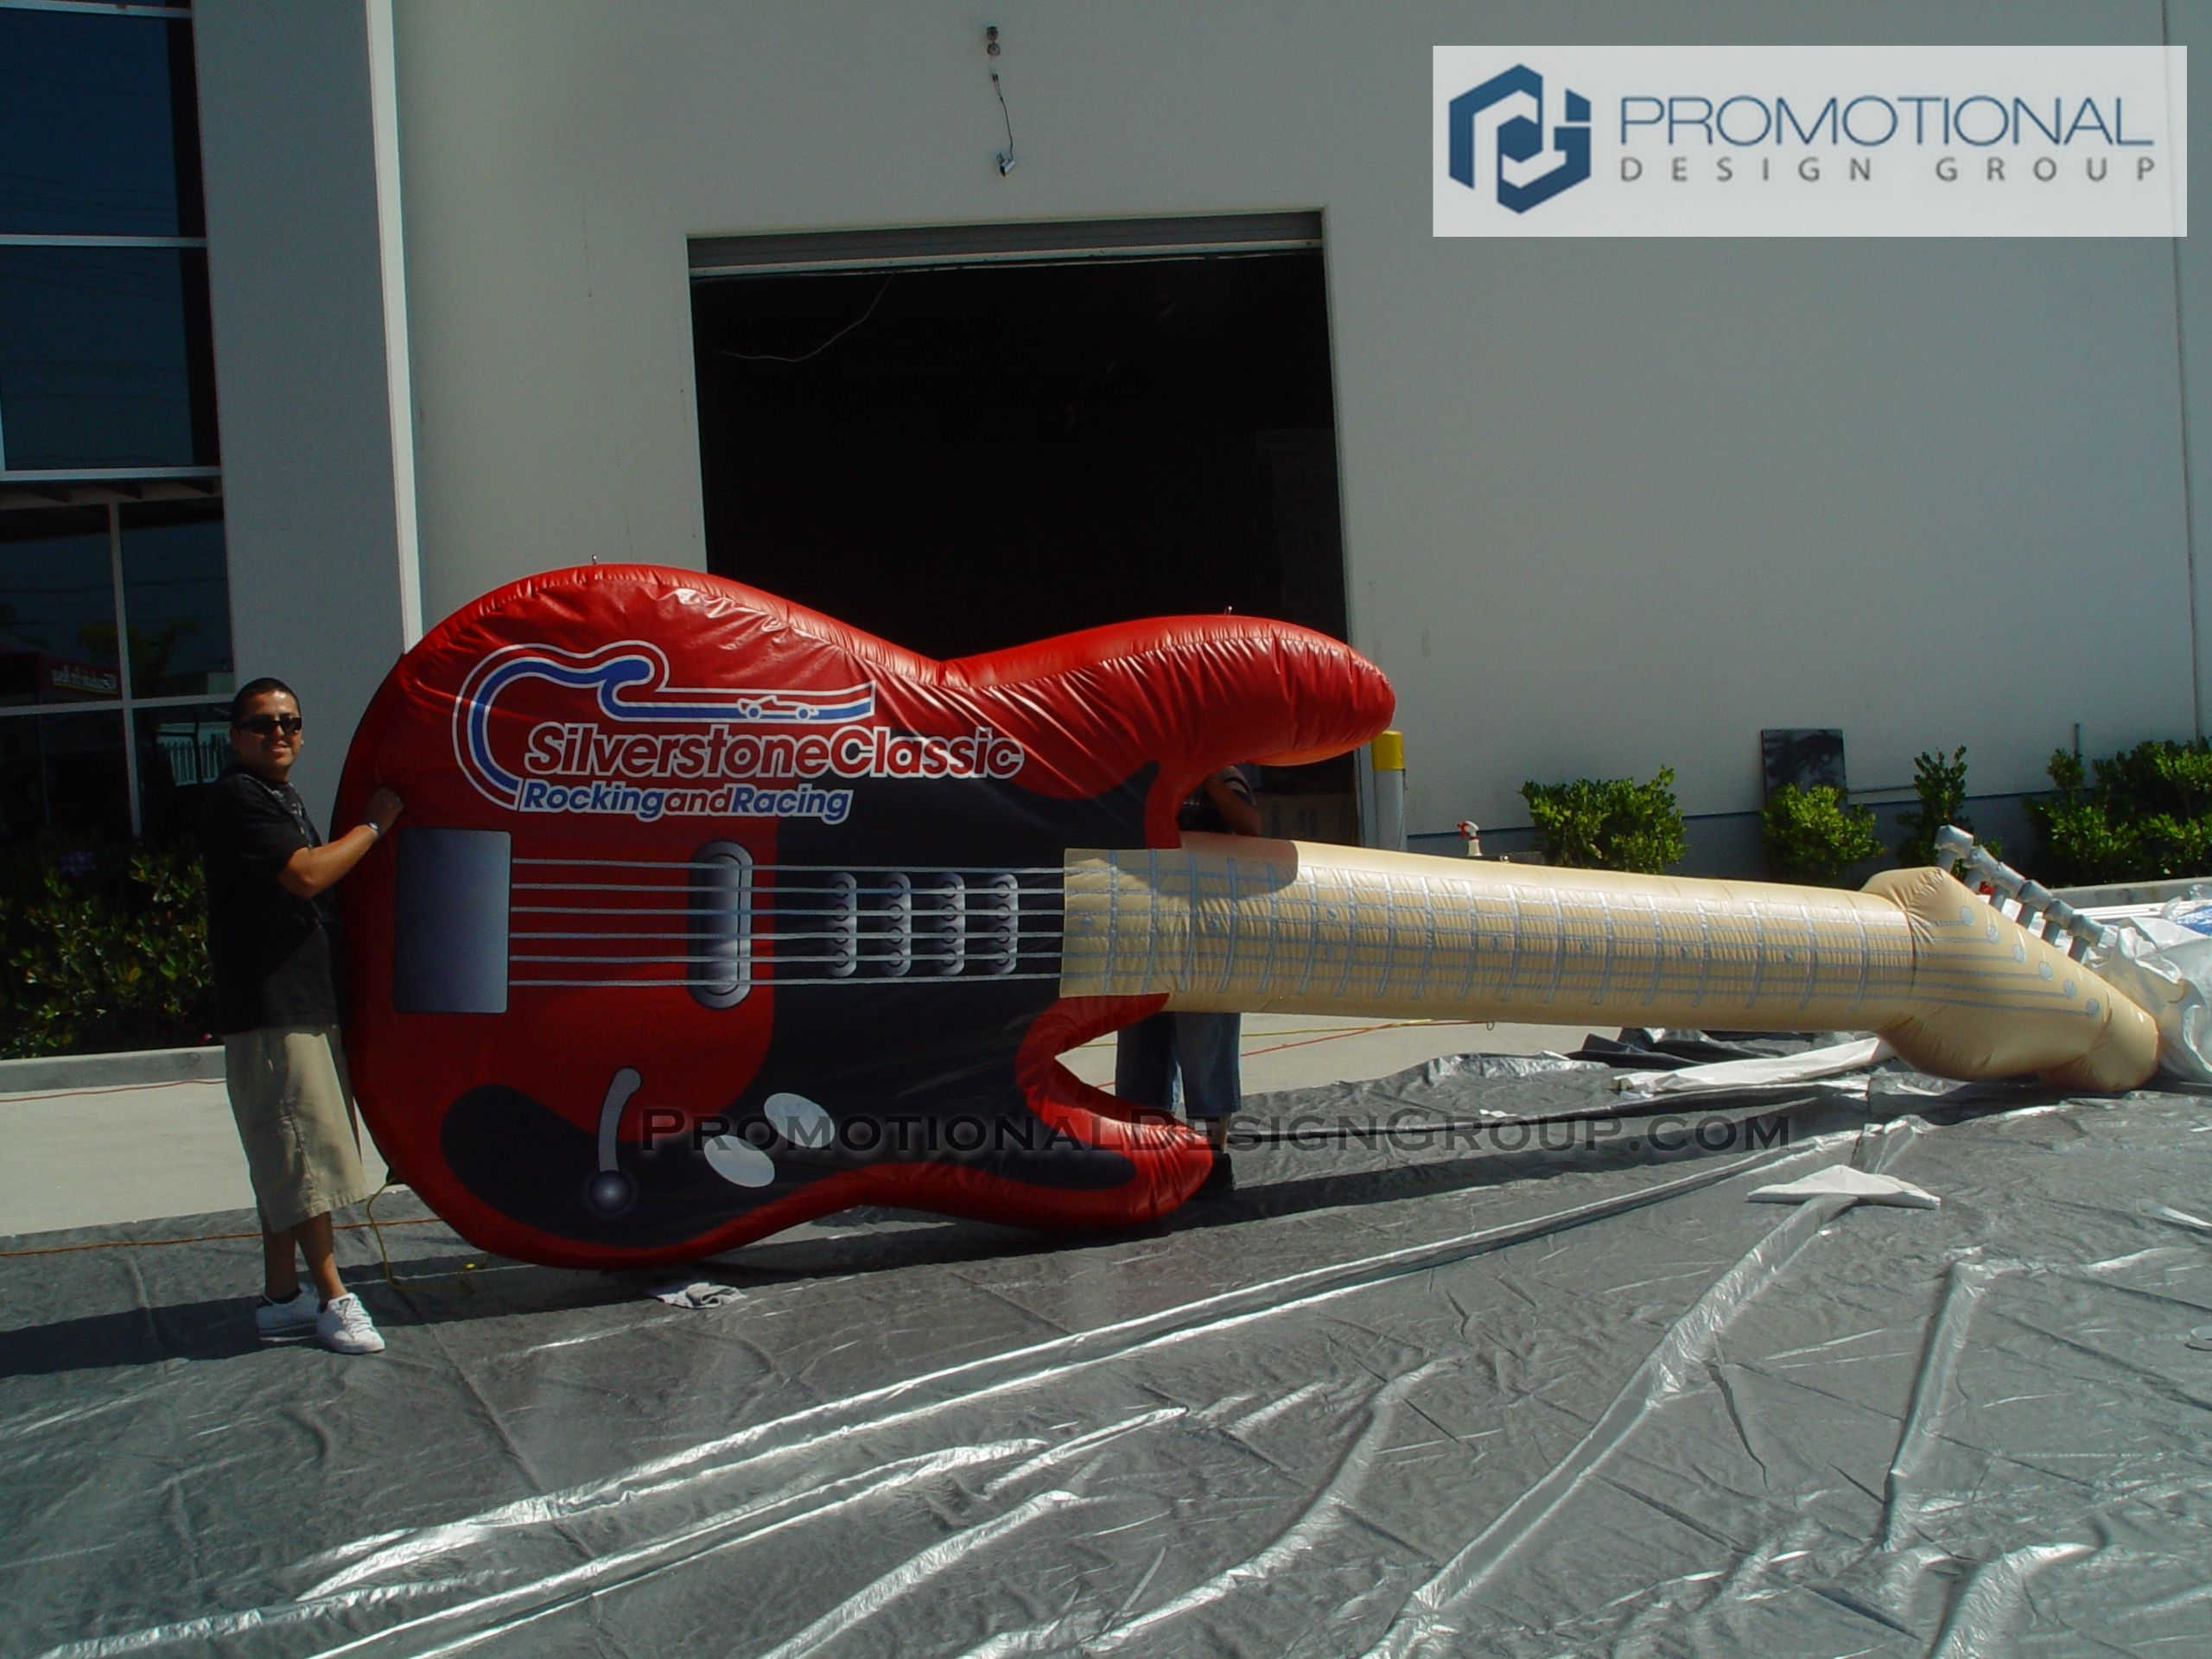 Giant inflatable guitar for silverstoneclassic custom